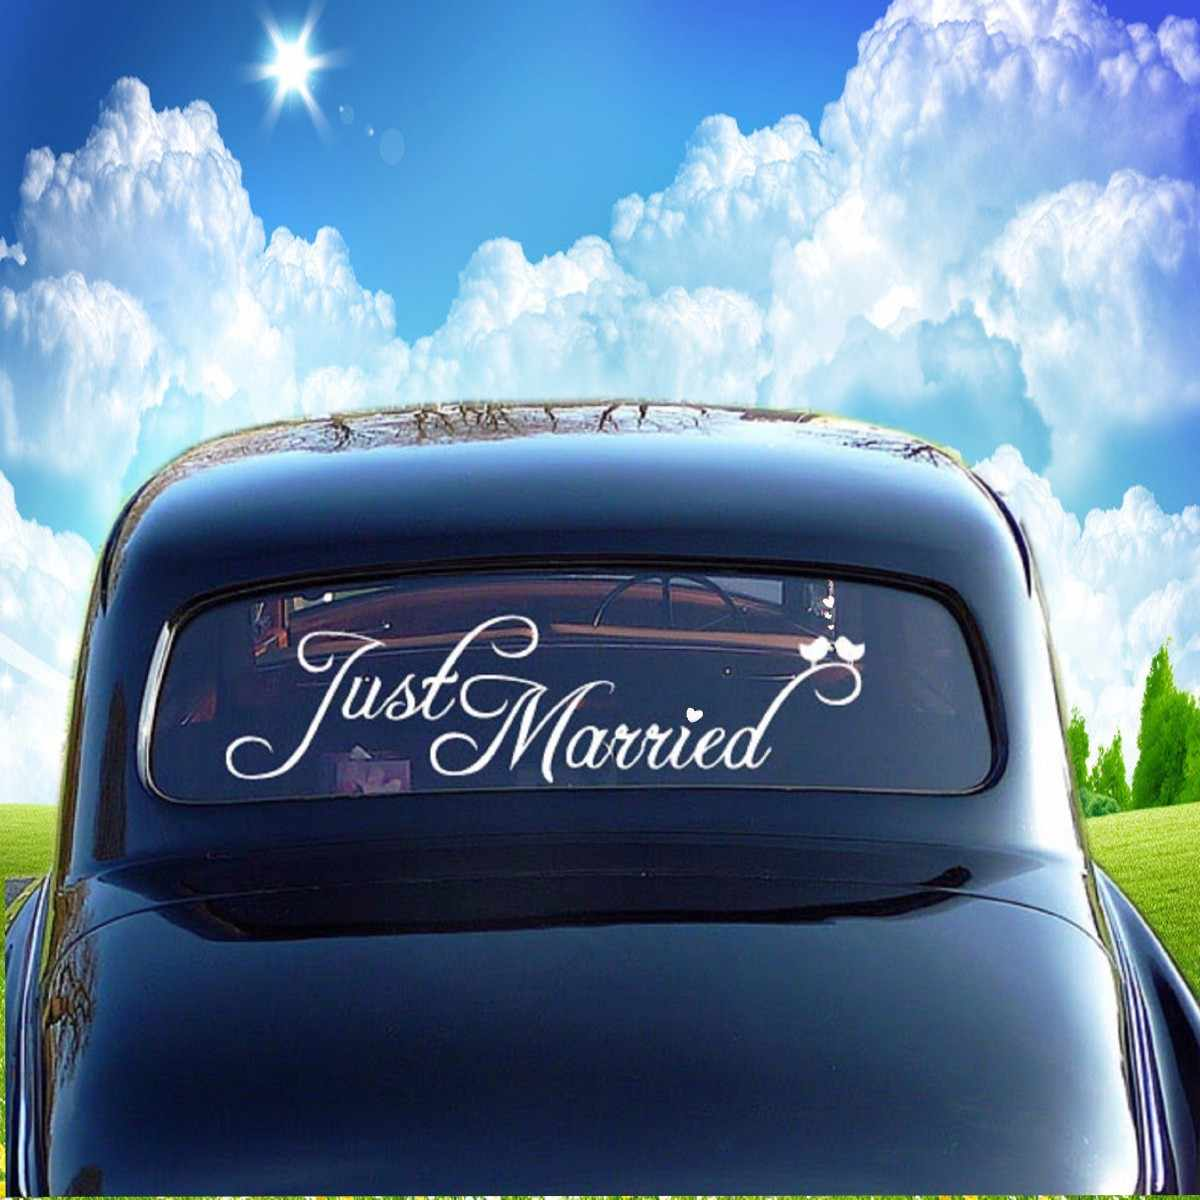 Just Married Wedding Car Window Banner PVC Waterproof Sticker Decal Vinyl Personalised Decor Car Decoration Wedding Supplies